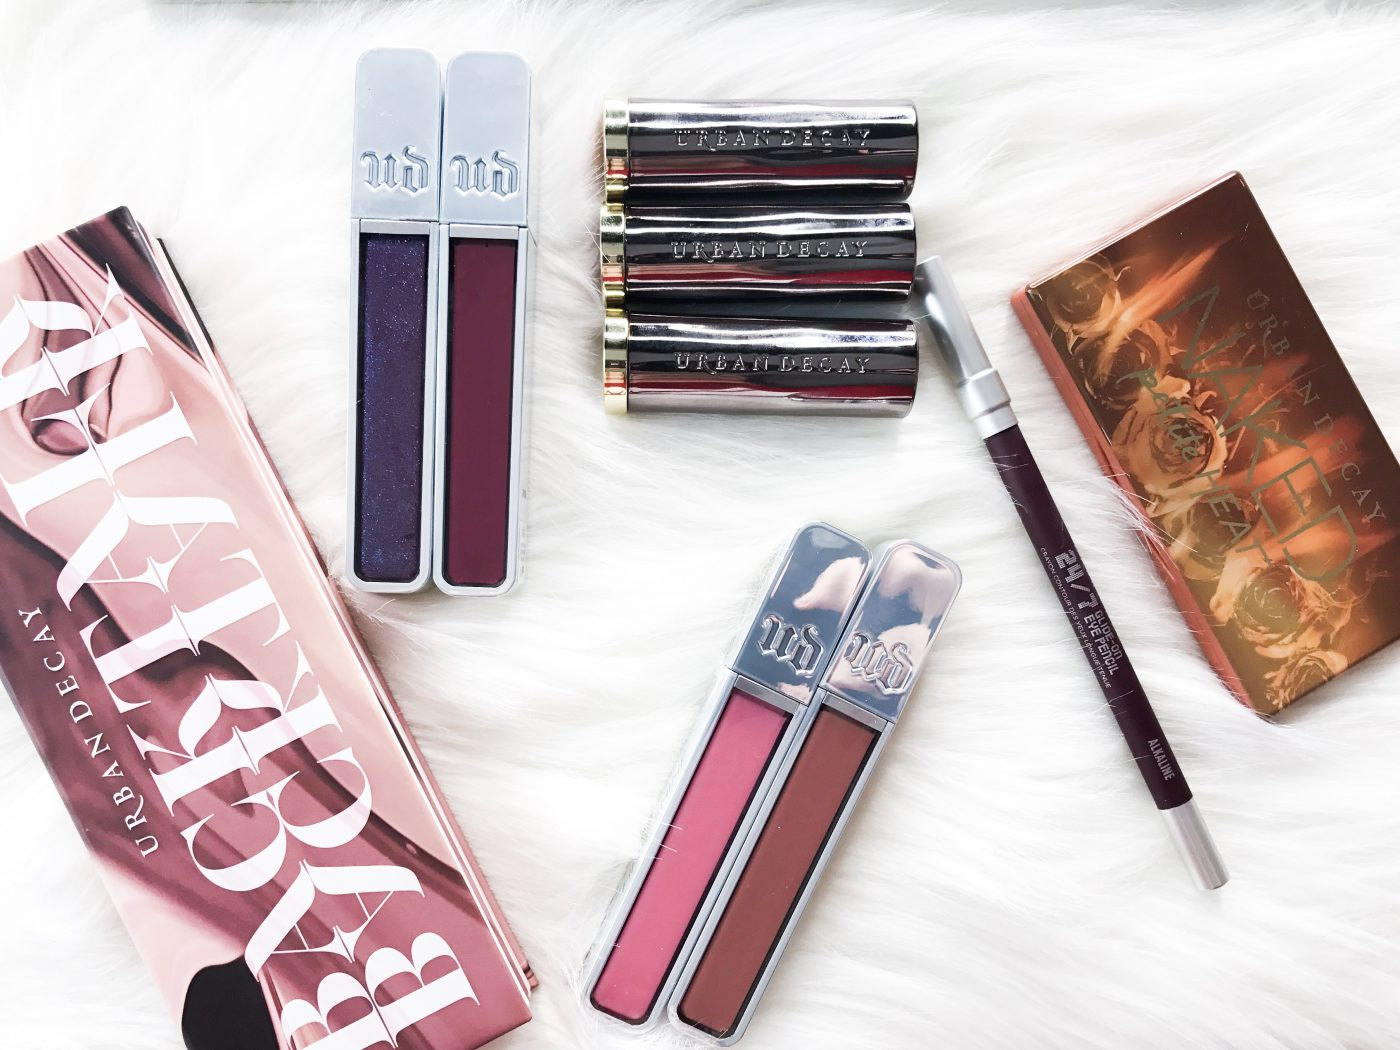 Urban Decay's Back Talk Spring Collection and Vice Lipsticks. Beauty Reviews & Product Reviews. The makeup collection you need for the spring!